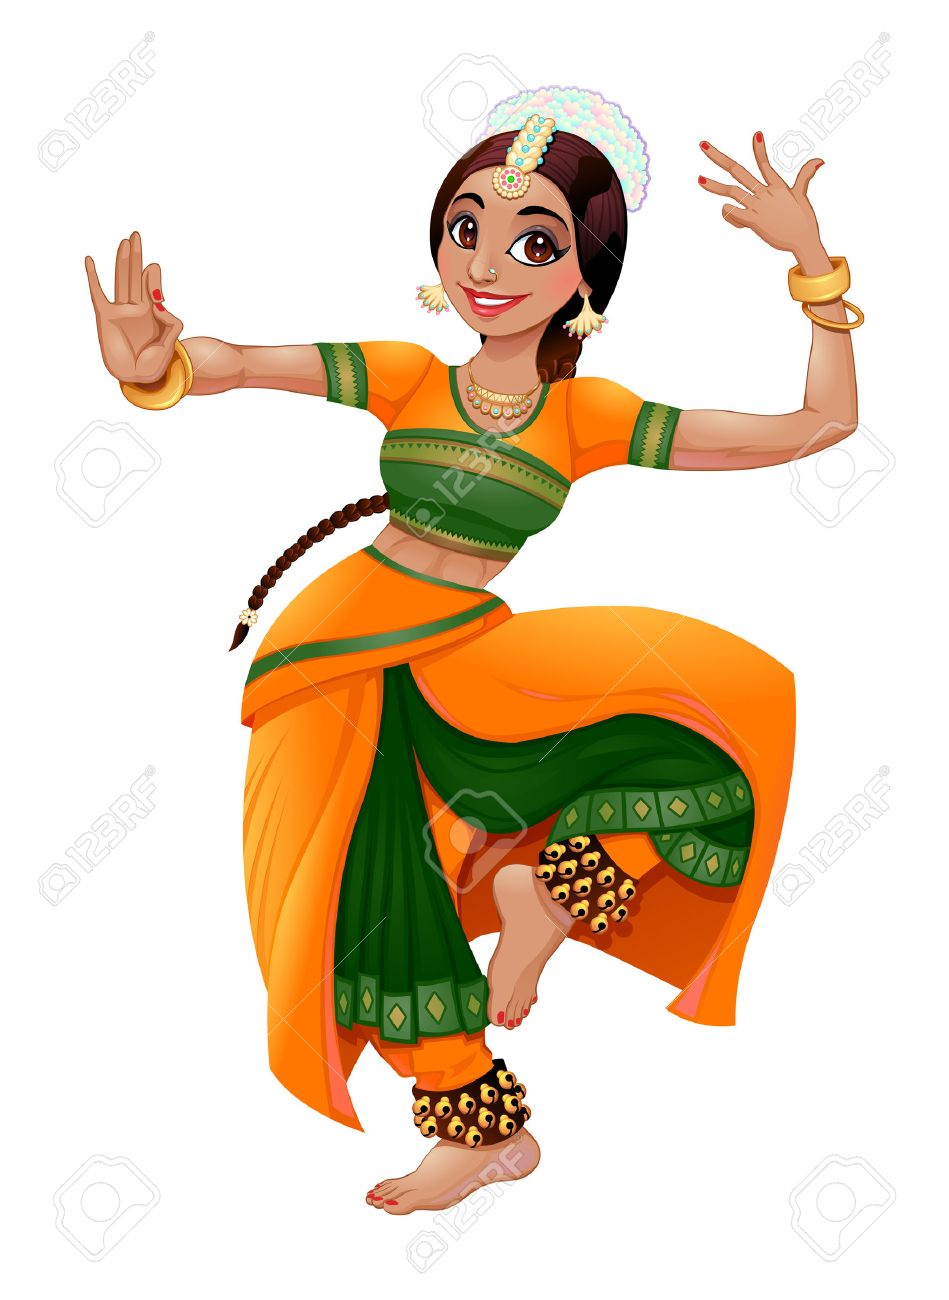 medium resolution of indian dancer stock vector 46880247